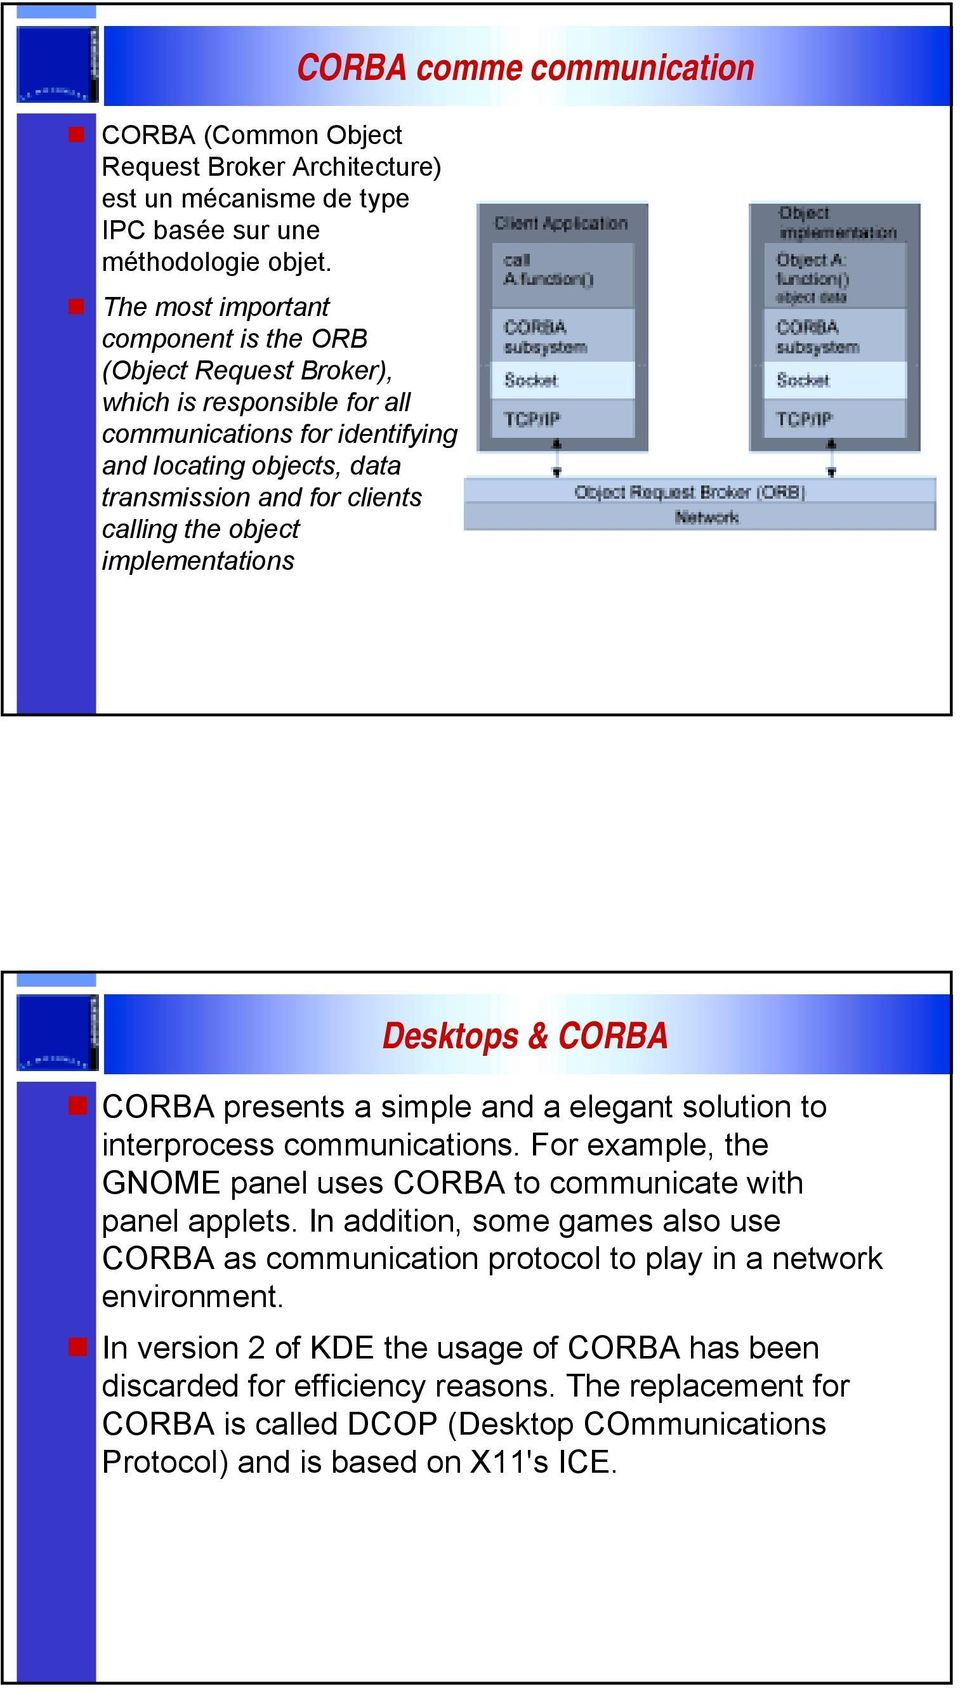 object implementations CORBA comme communication Desktops & CORBA! CORBA presents a simple and a elegant solution to interprocess communications.